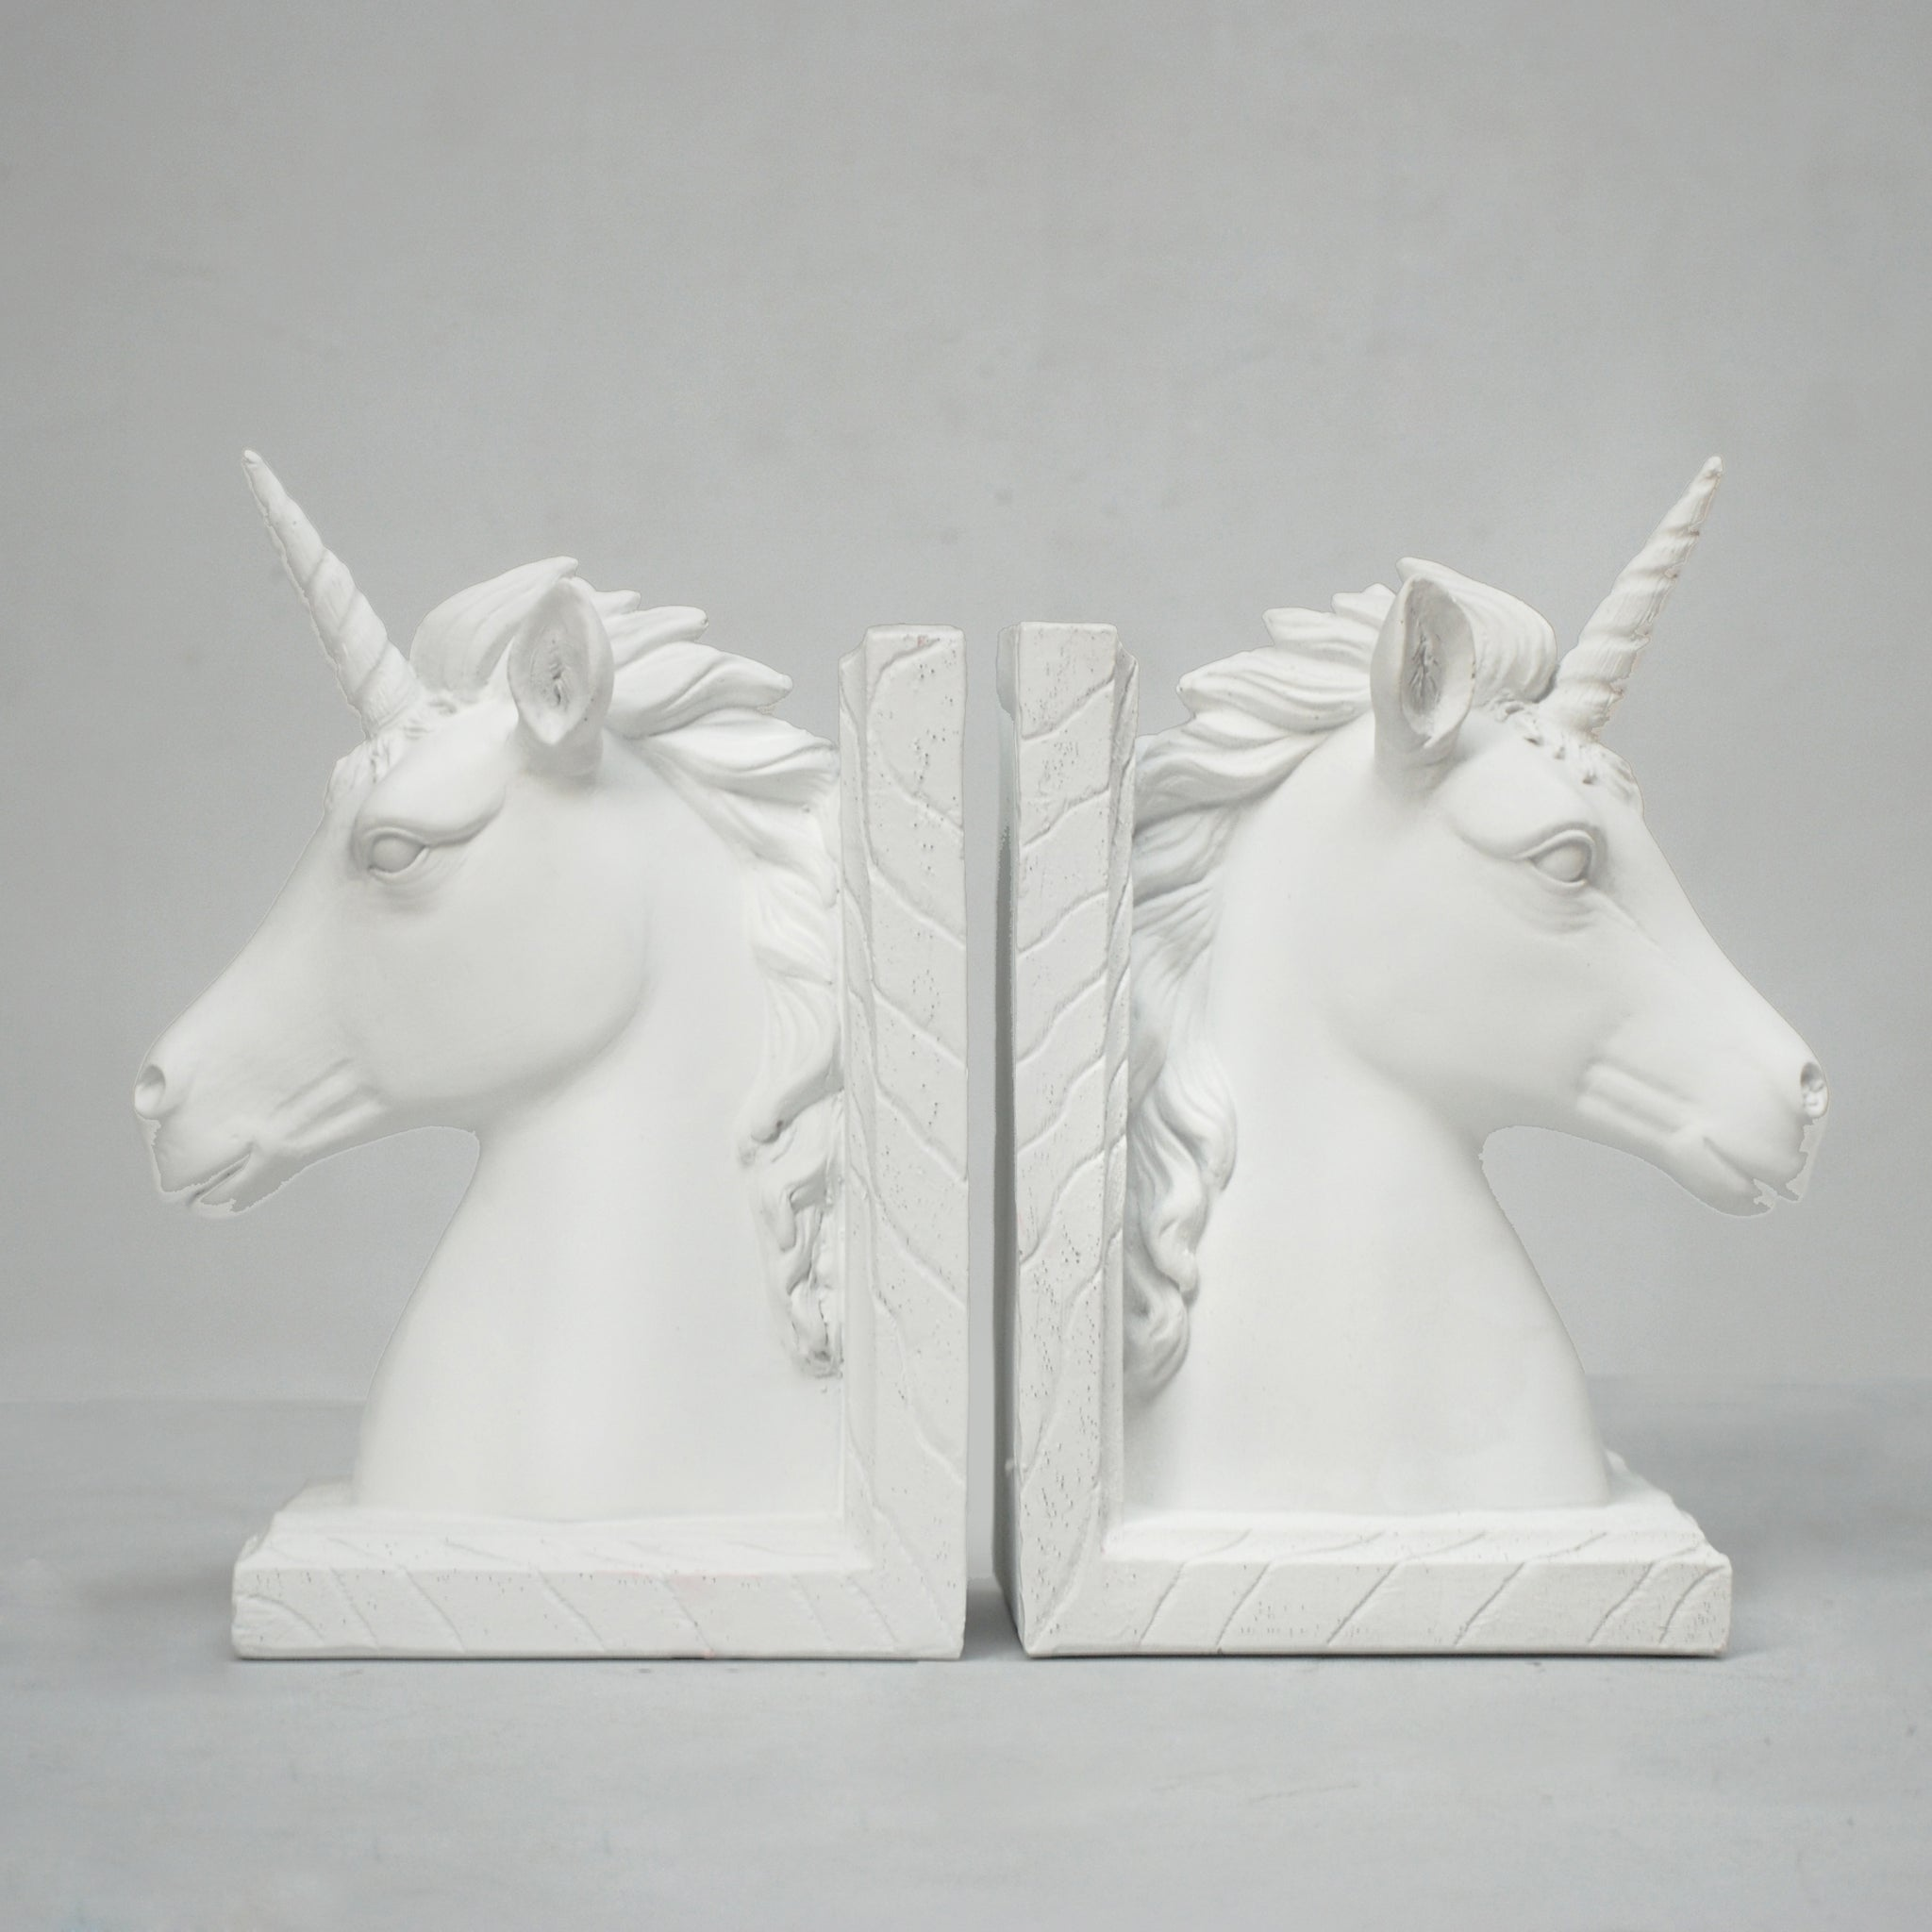 beautiful unicorn bookends in white resin for home decor